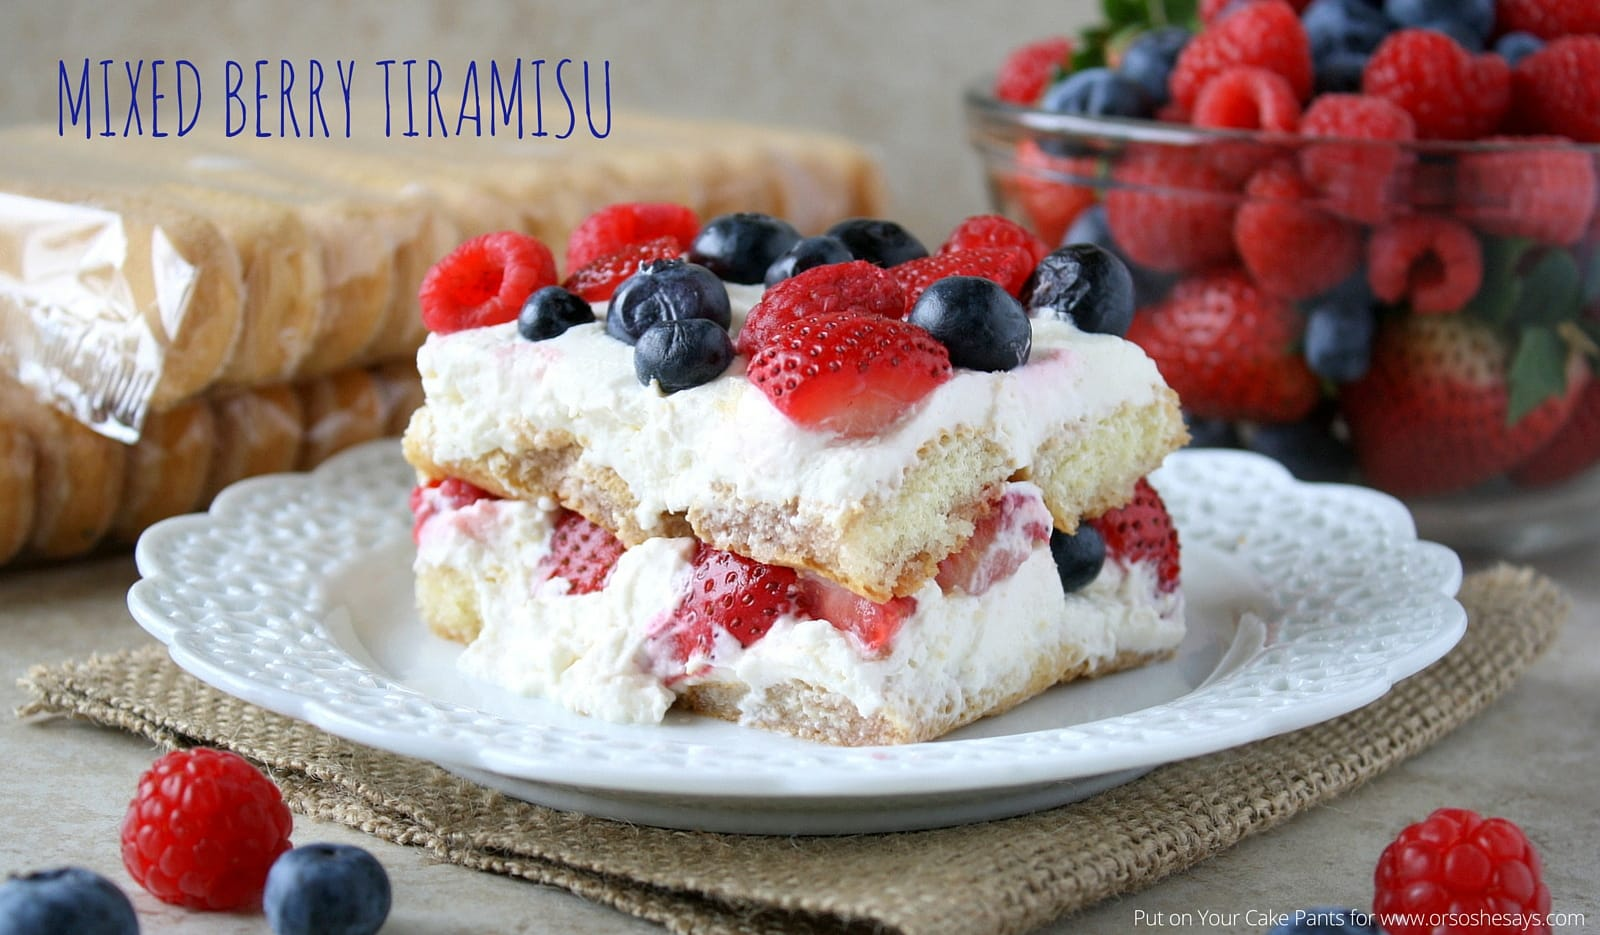 Mixed Berry Tiramisu is a fresh, summery take on a classic. See the recipe at www.orsoshesays.com.